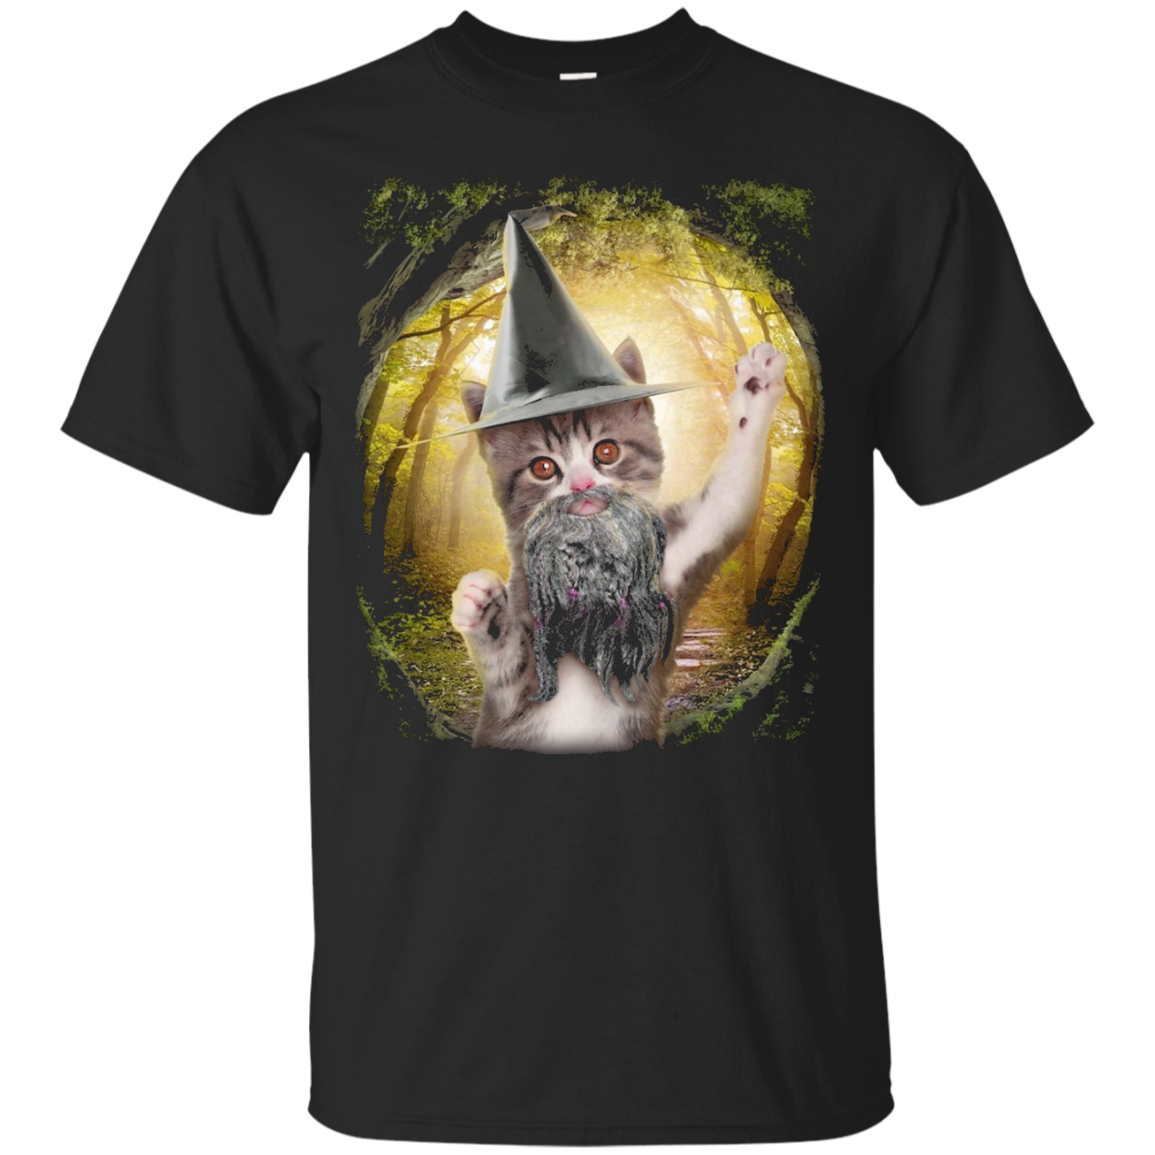 Wizard Kitty T-Shirt, Cute Fantasy Cat Tee by Zany Brainy